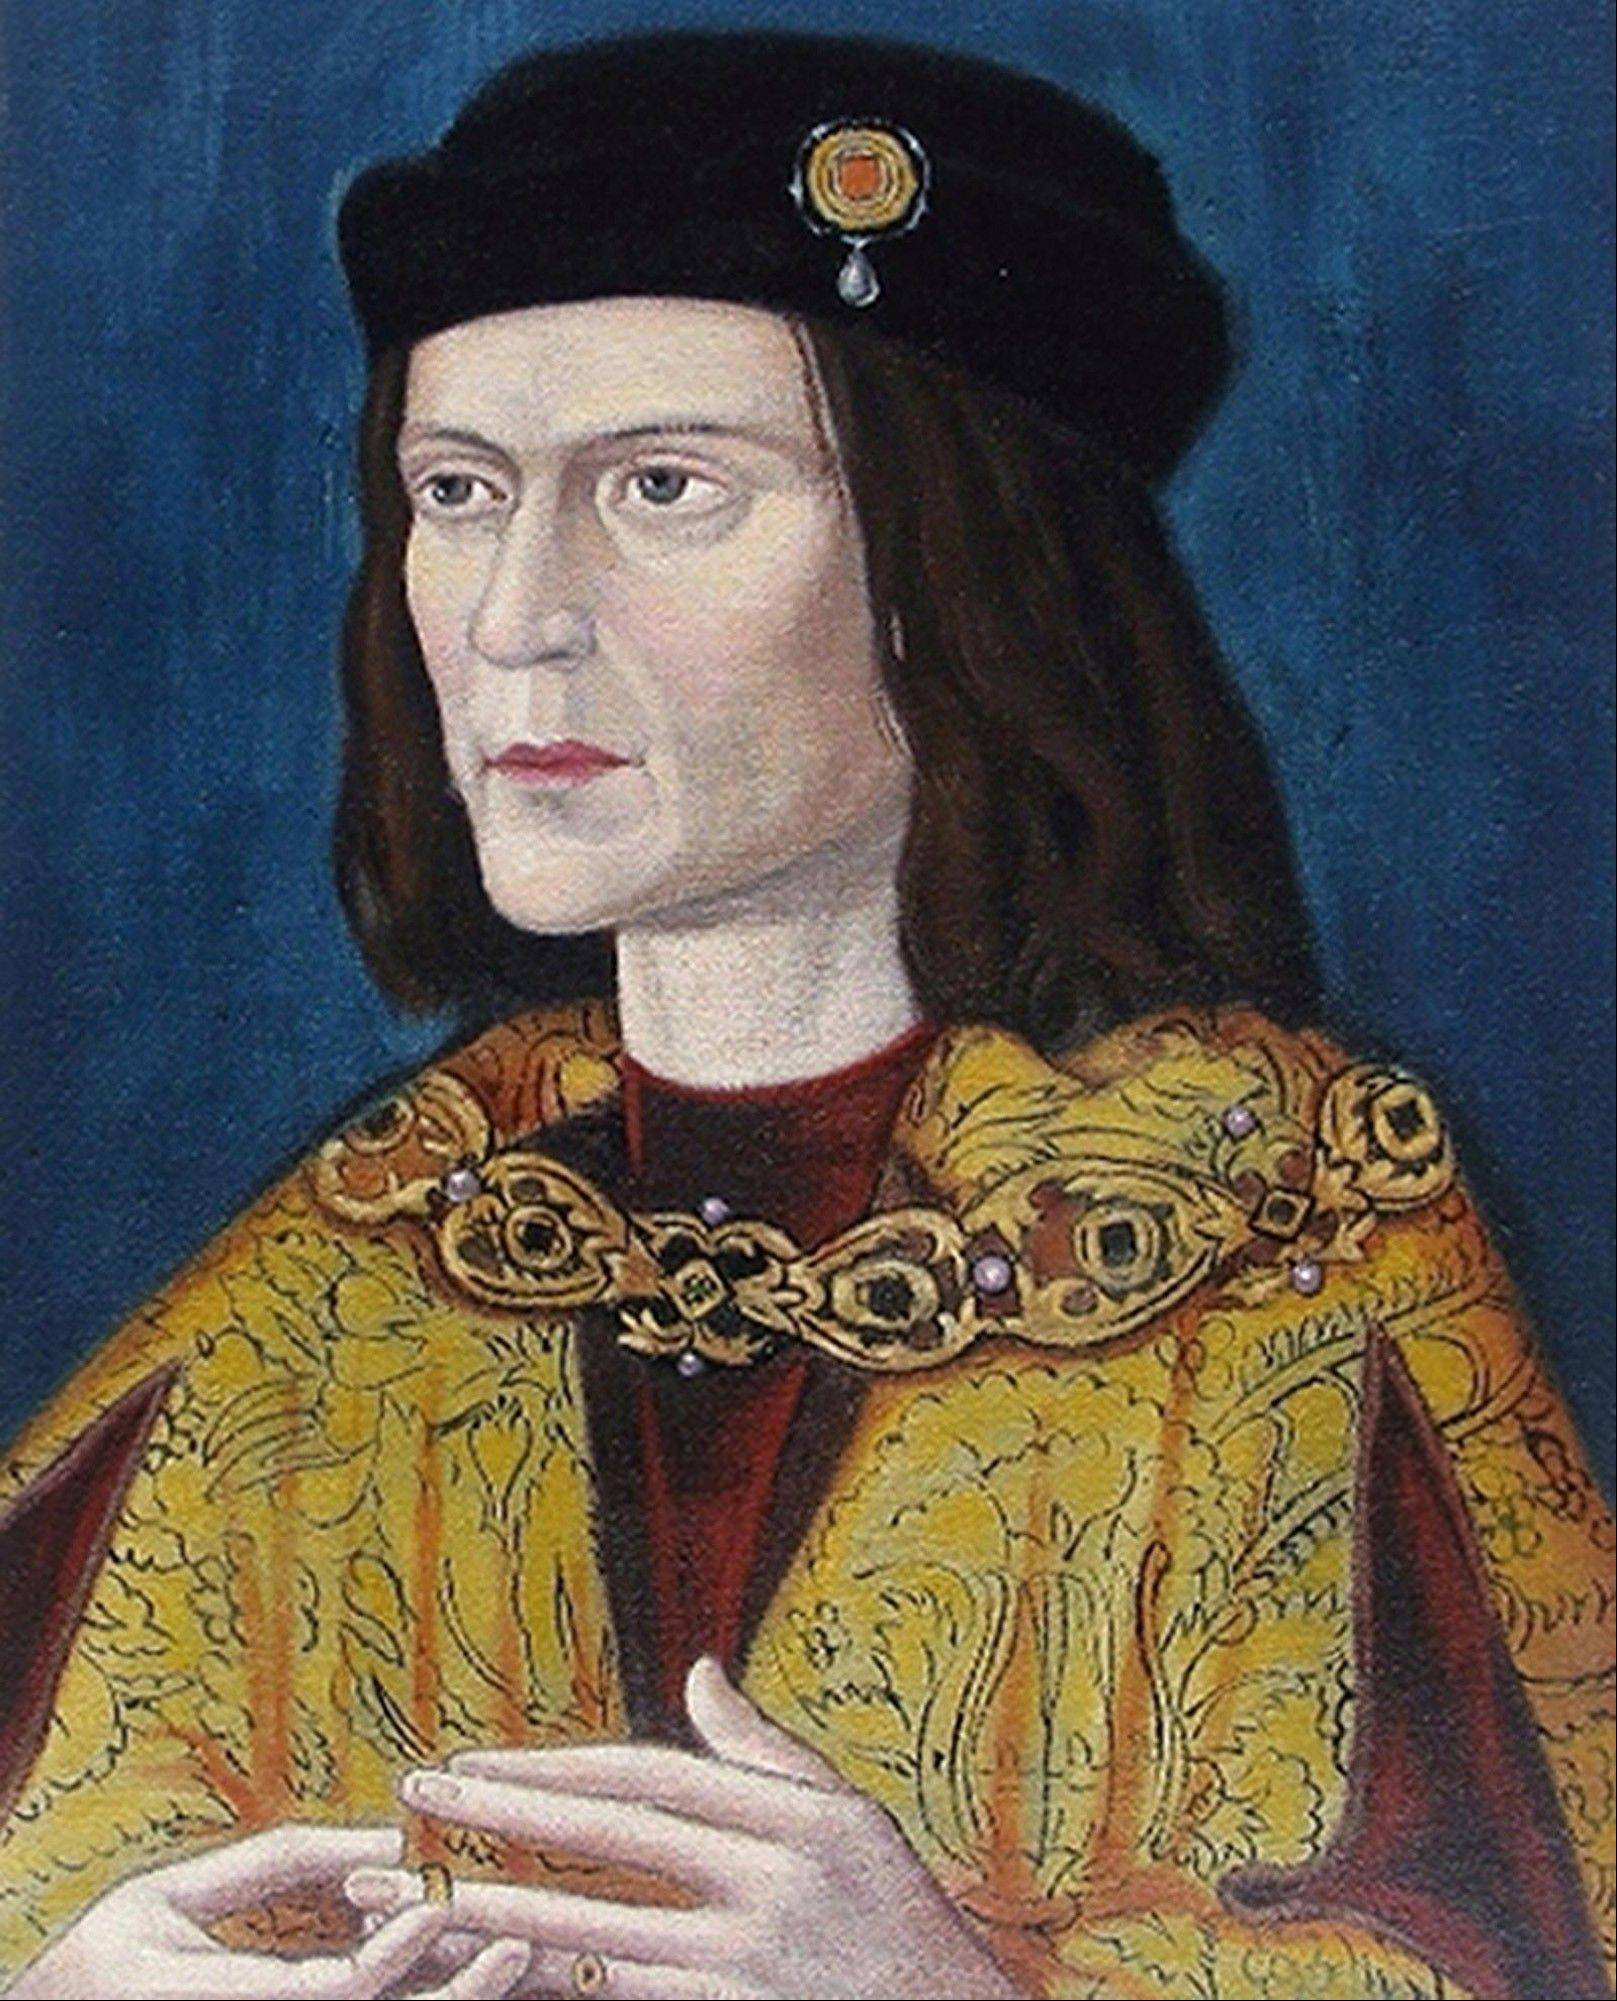 This photo made available by the University of Leicester, England, Monday of the earliest surviving portrait of Richard III in Leicester Cathedral. Richard was immortalized in a play by Shakespeare as a hunchbacked usurper who left a trail of bodies � including those of his two young nephews, murdered in the Tower of London � on his way to the throne.